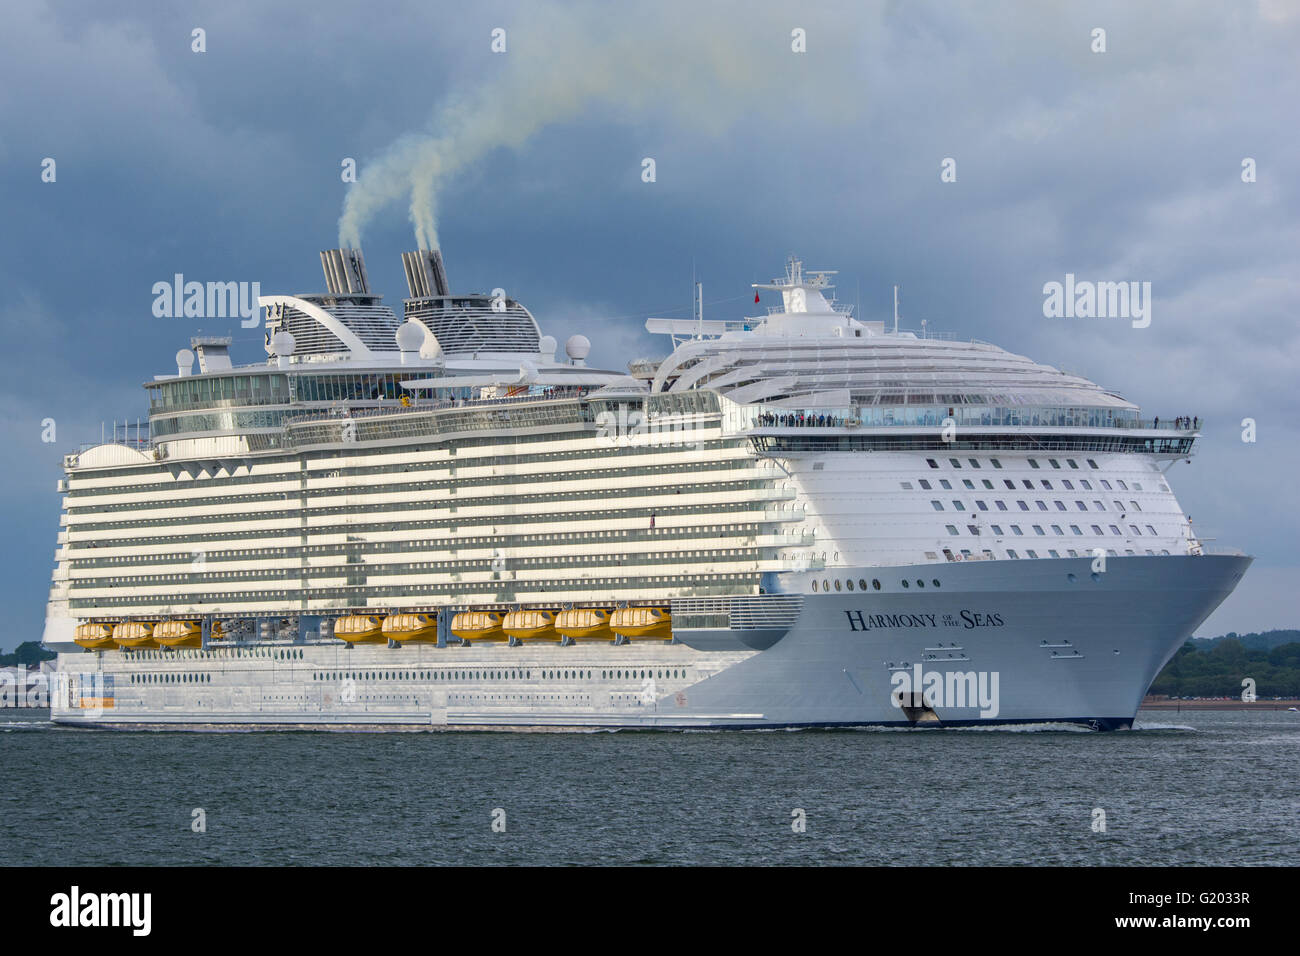 The cruise ship Harmony of the Seas departing Southampton, UK on the 22nd May 2016 for it's maiden cruise. - Stock Image